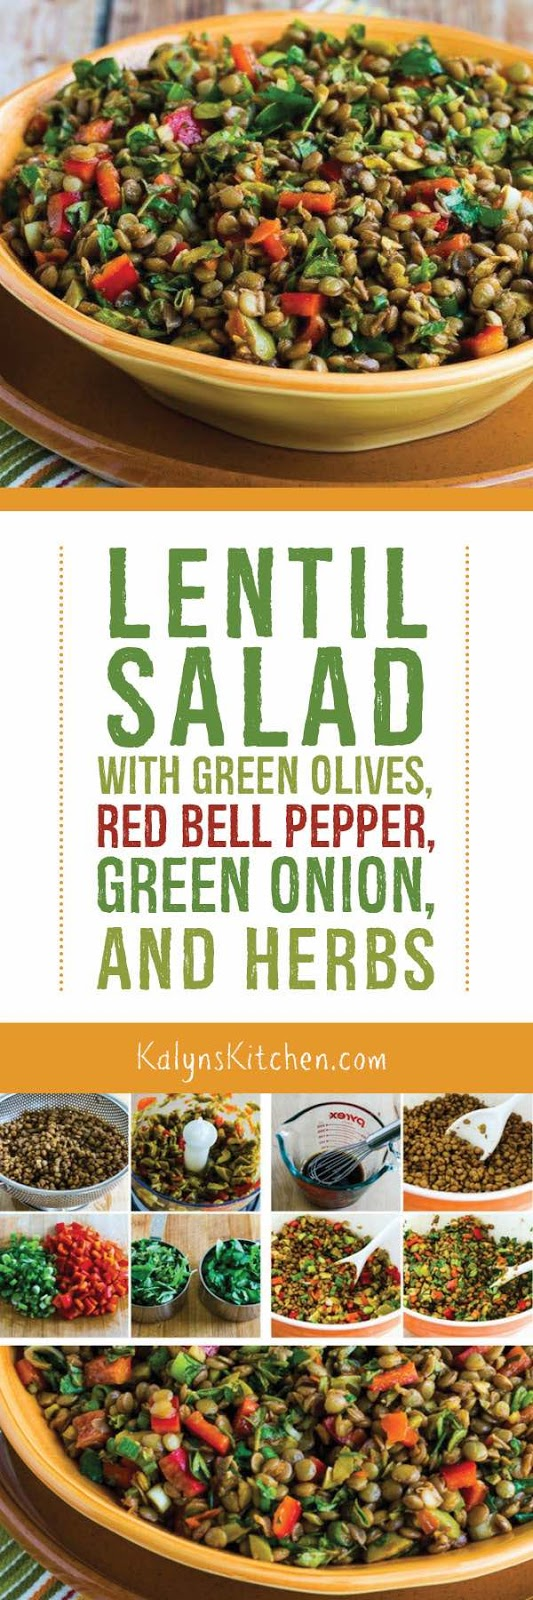 Lentil Salad with Green Olives, Red Bell Pepper, Green Onion, and ...